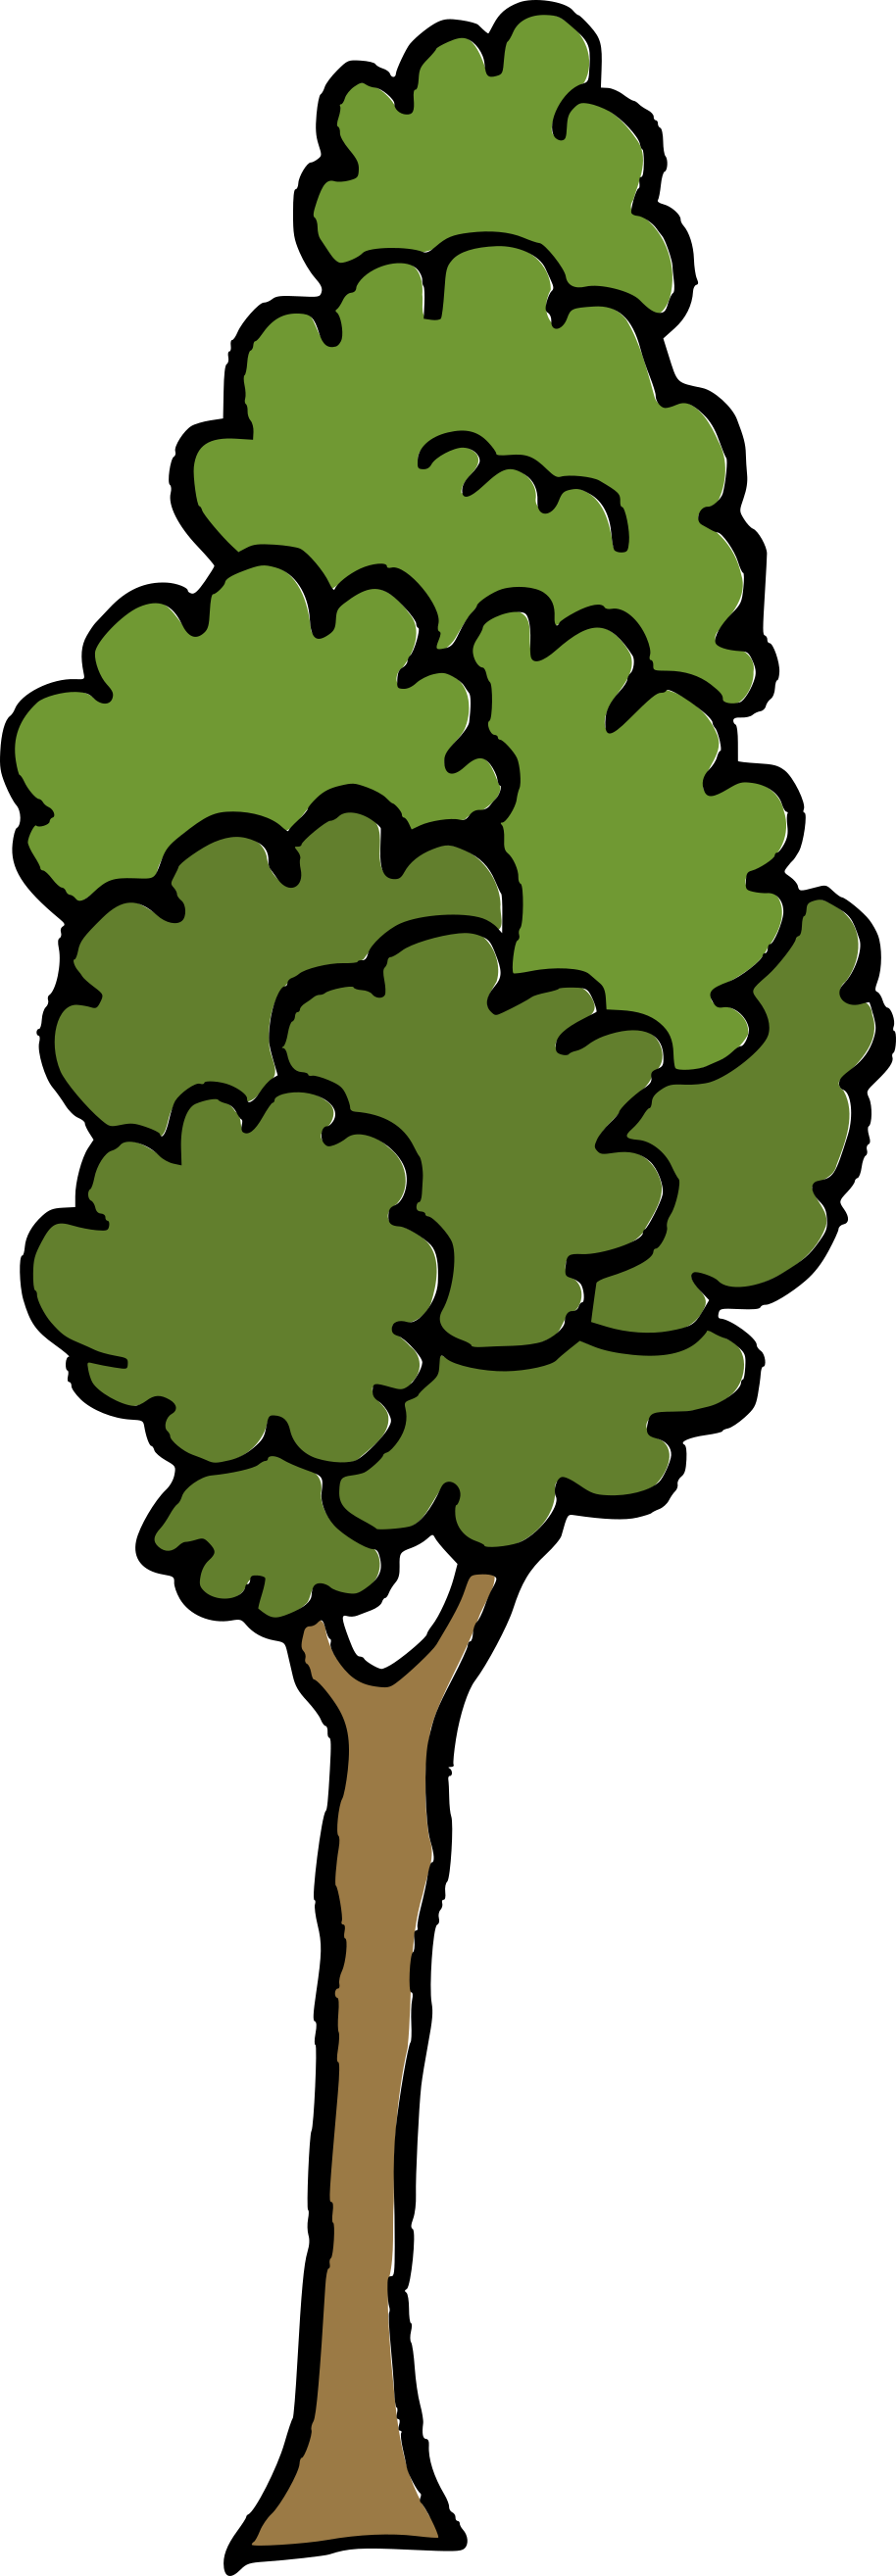 cartoon-tree-4.png